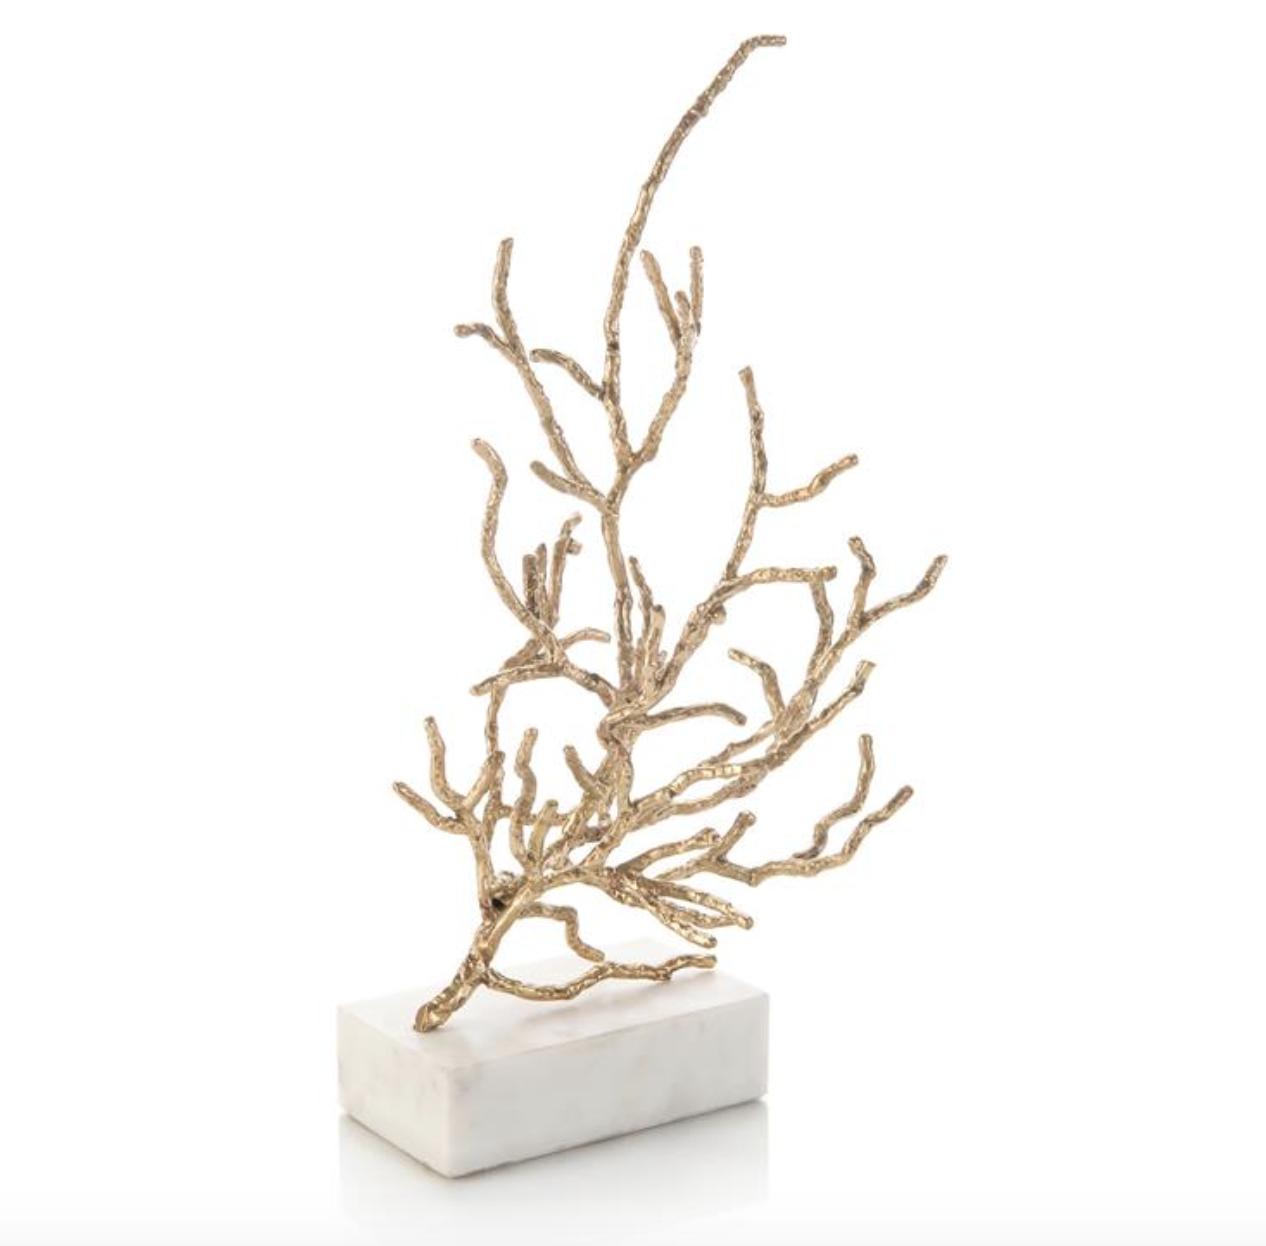 Brass Coral Sculpture